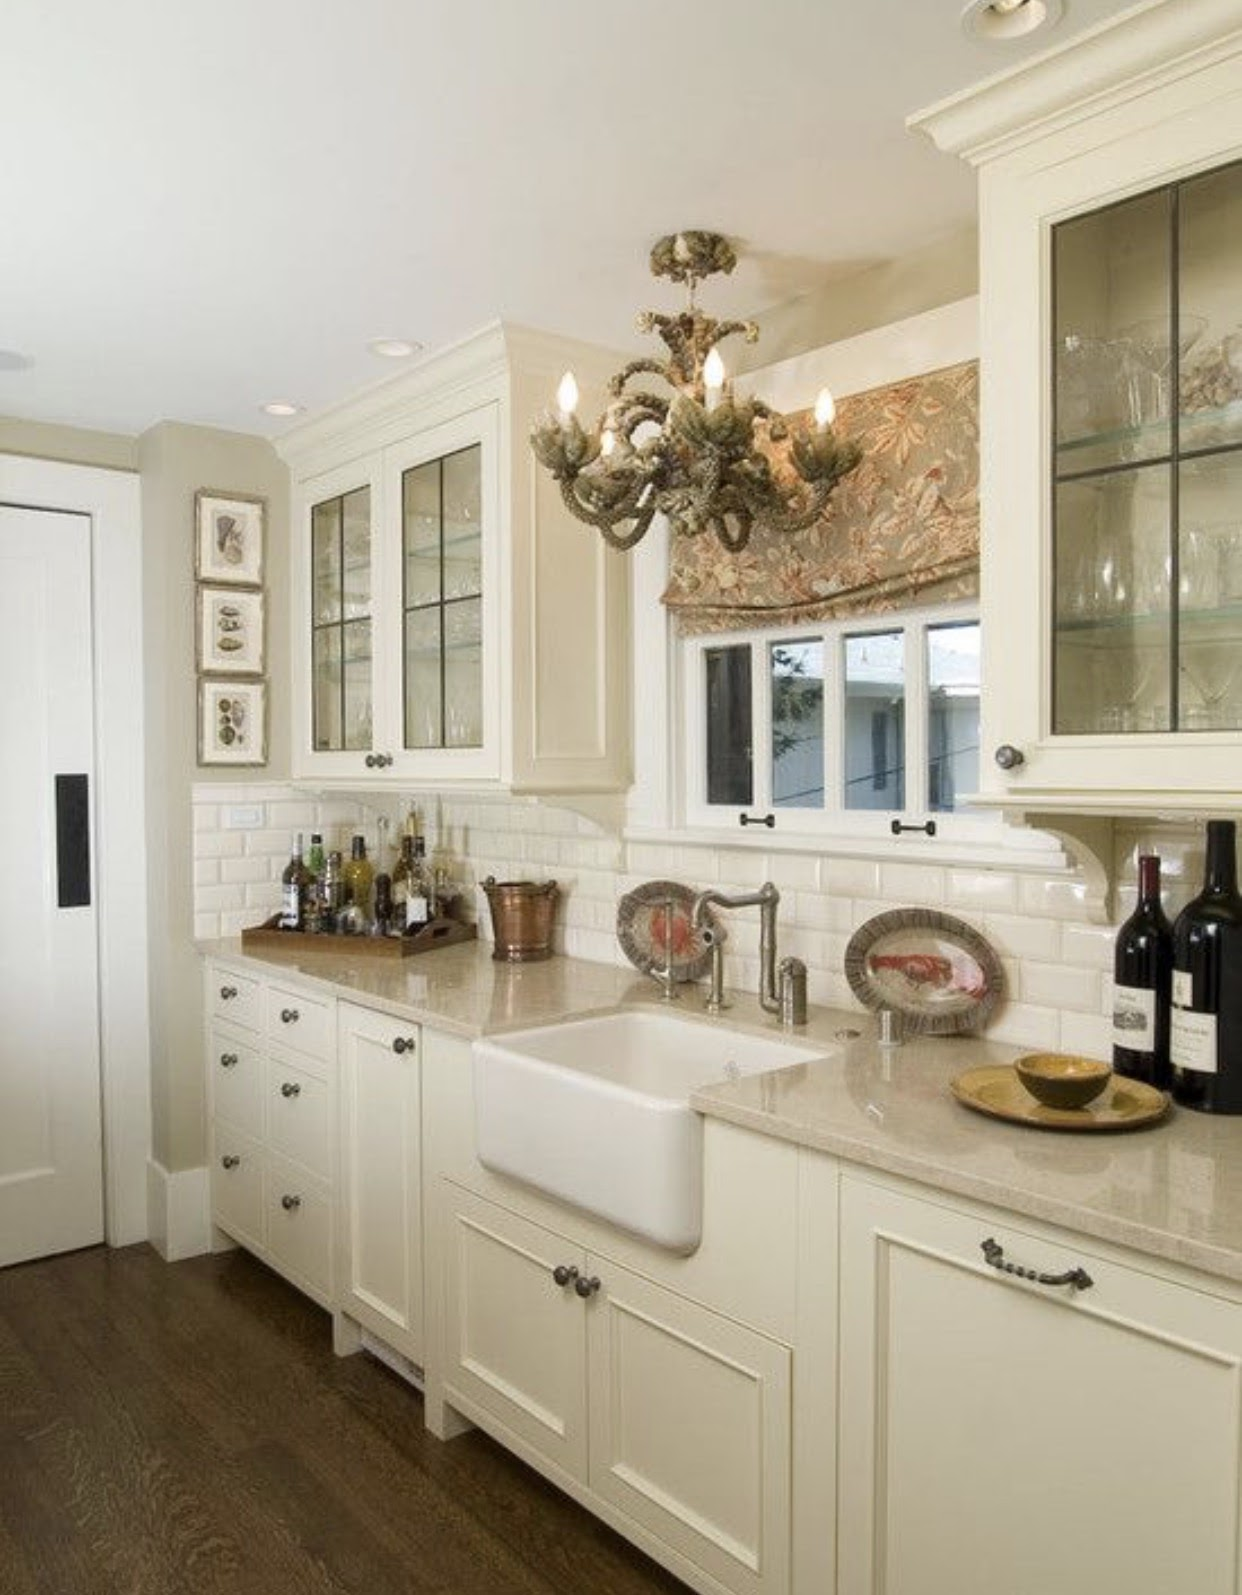 kitchen cabinet painting denver - painting kitchen cabinets and